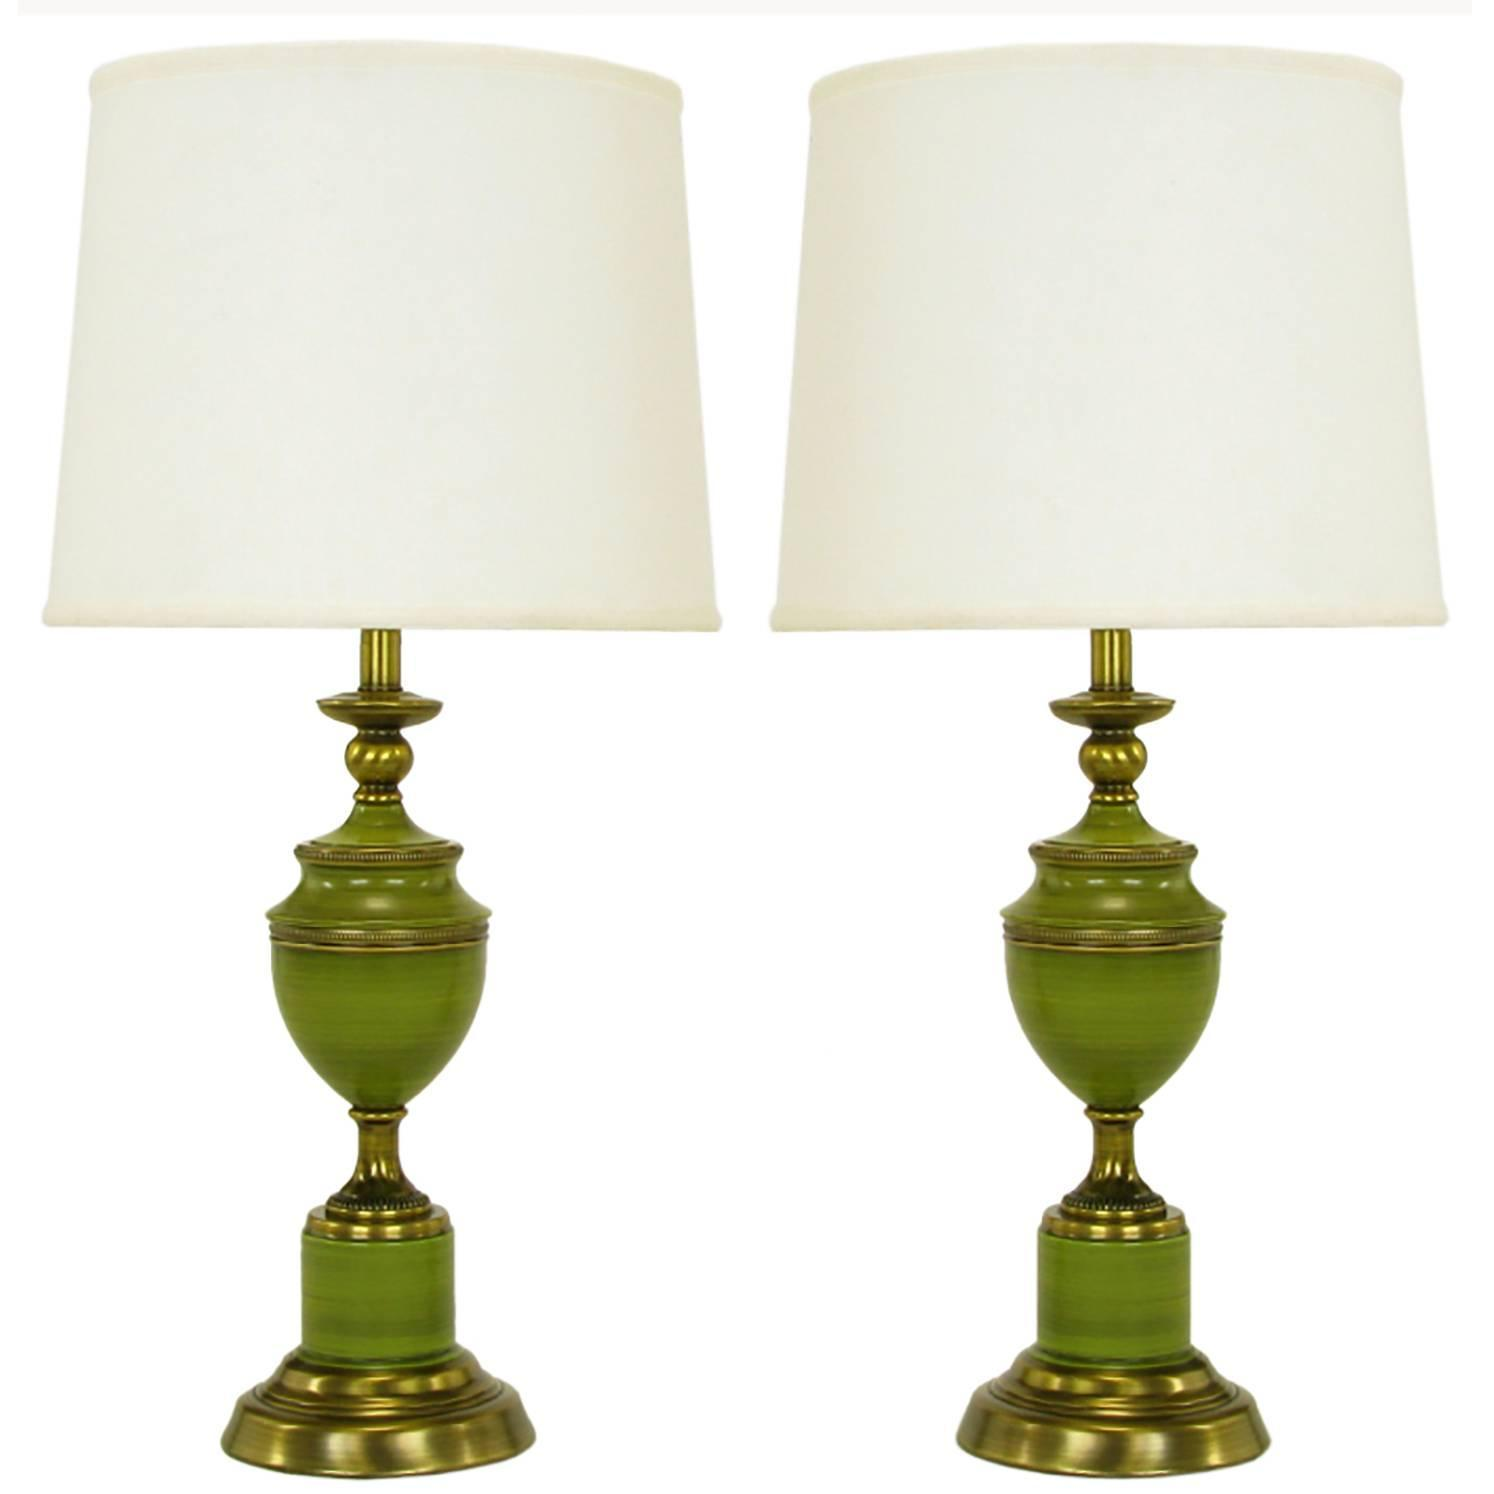 Rembrandt Lamp Company Table Lamps - 43 For Sale at 1stdibs